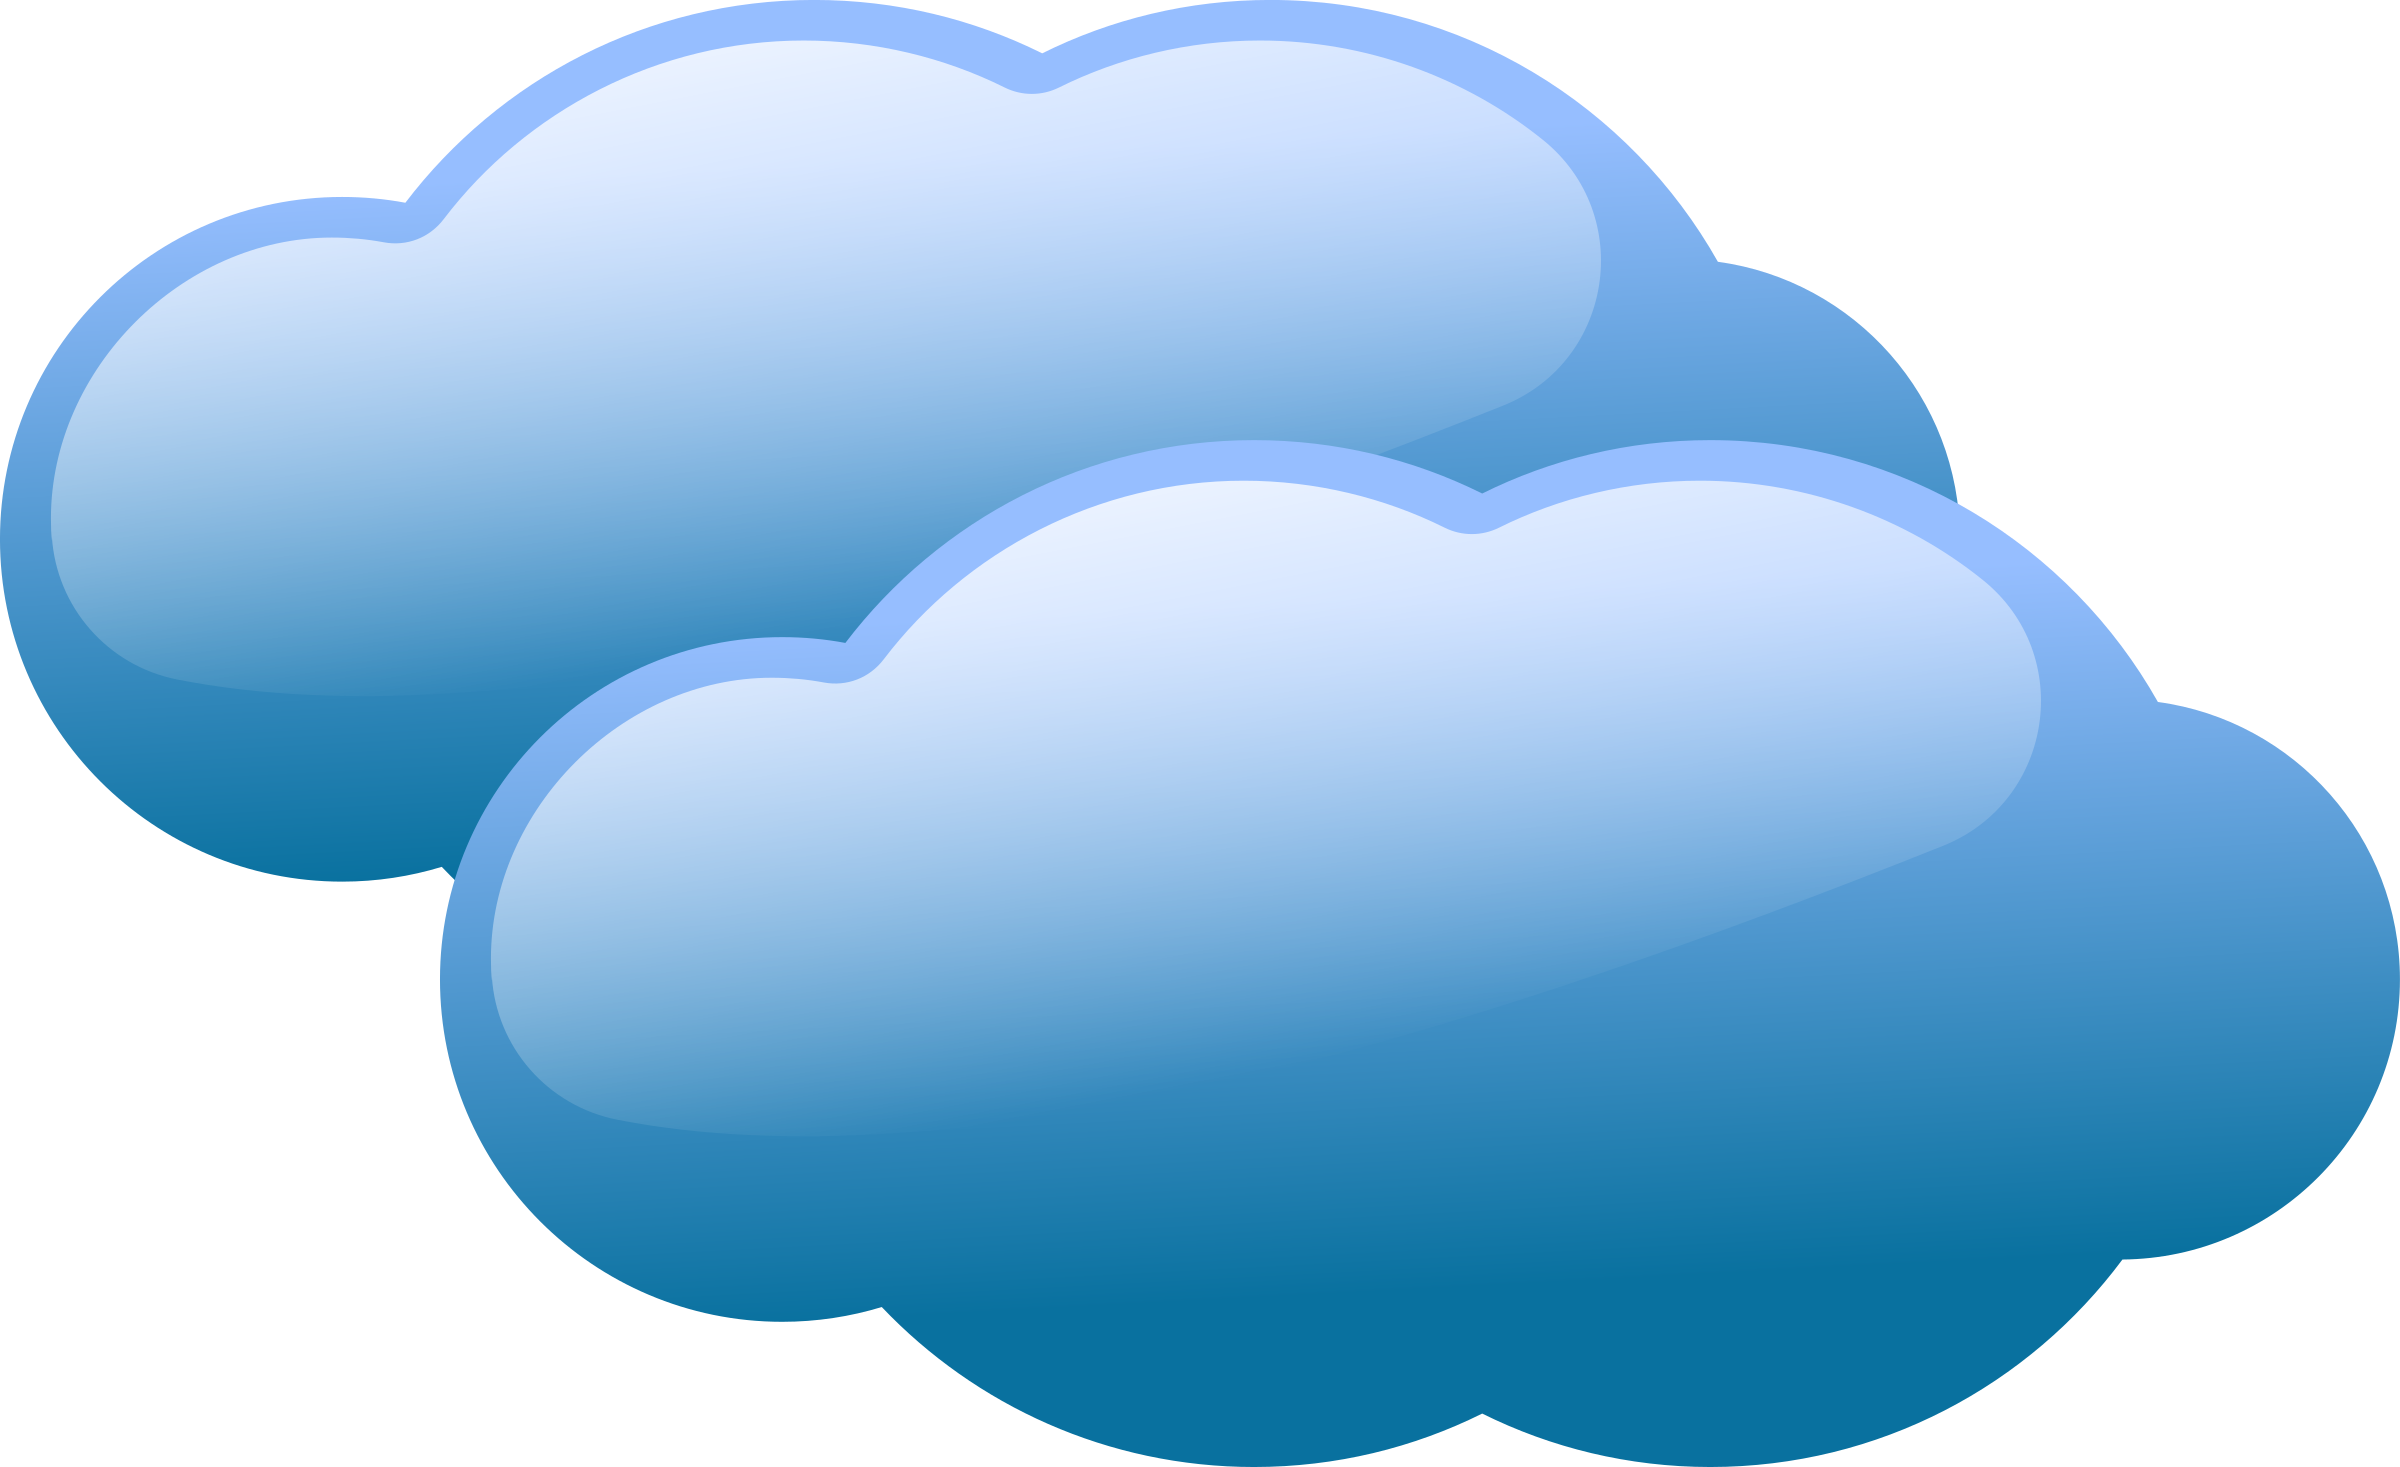 clipart clouds rh openclipart org clip art cloudy weather clip art cloudy weather